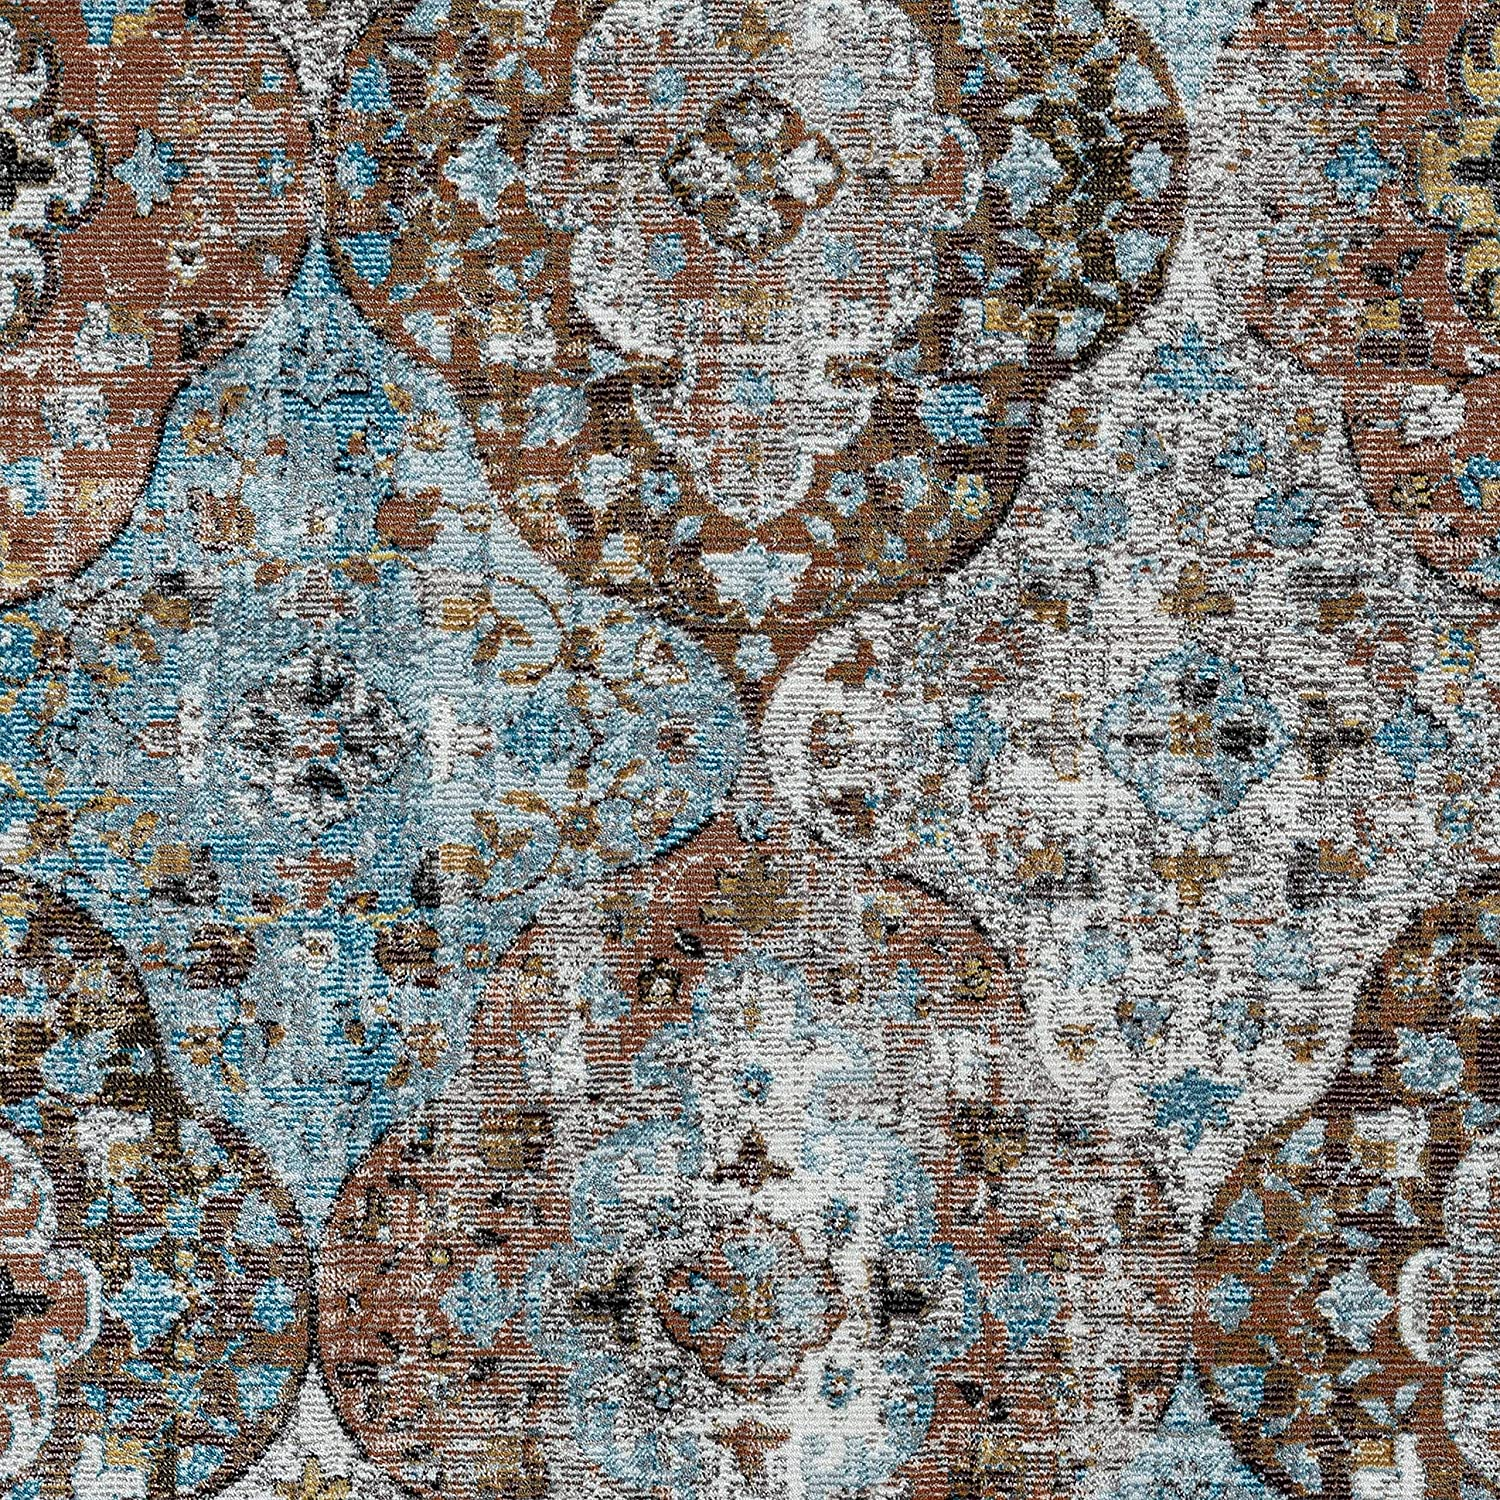 MISC Bright Area Rug 5' X 8' Blue Oriental Cotton Jute Polypropylene Contains Latex